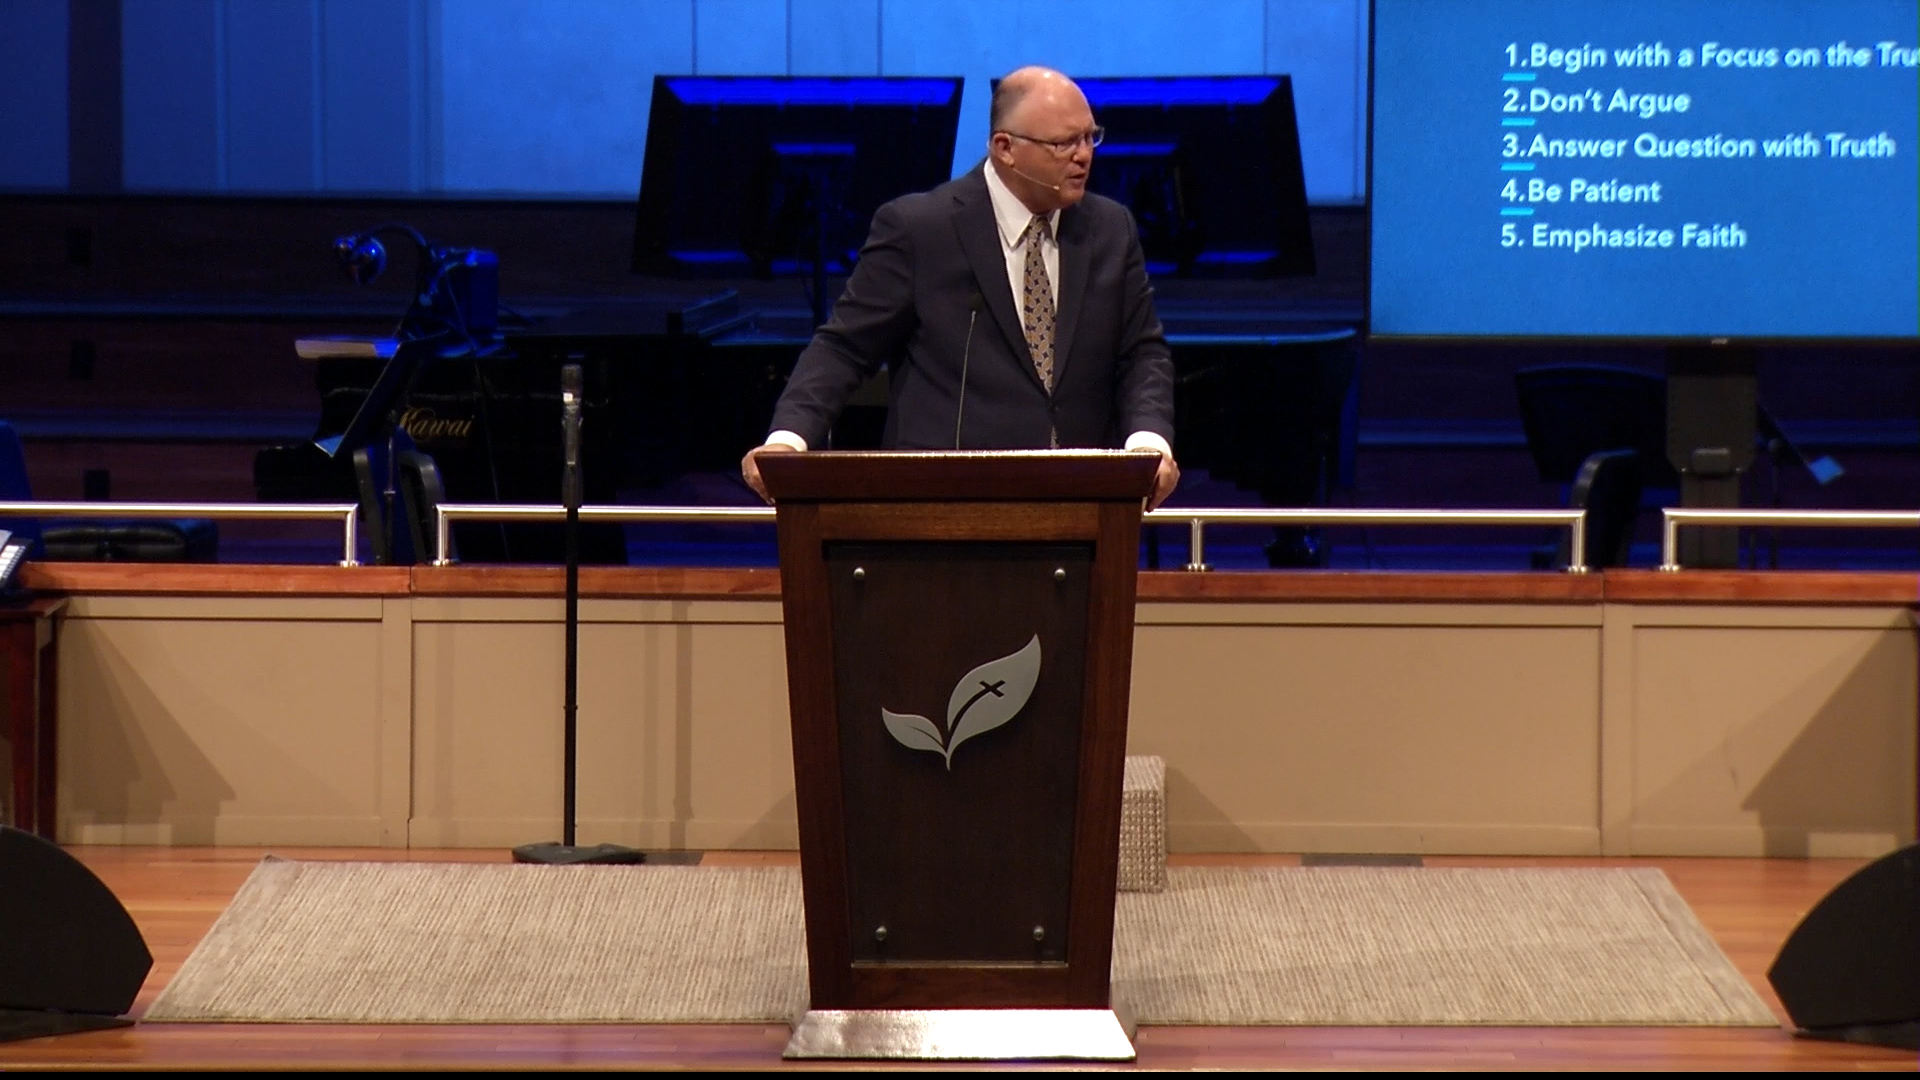 Pastor Paul Chappell: How to Witness to a Religious Person